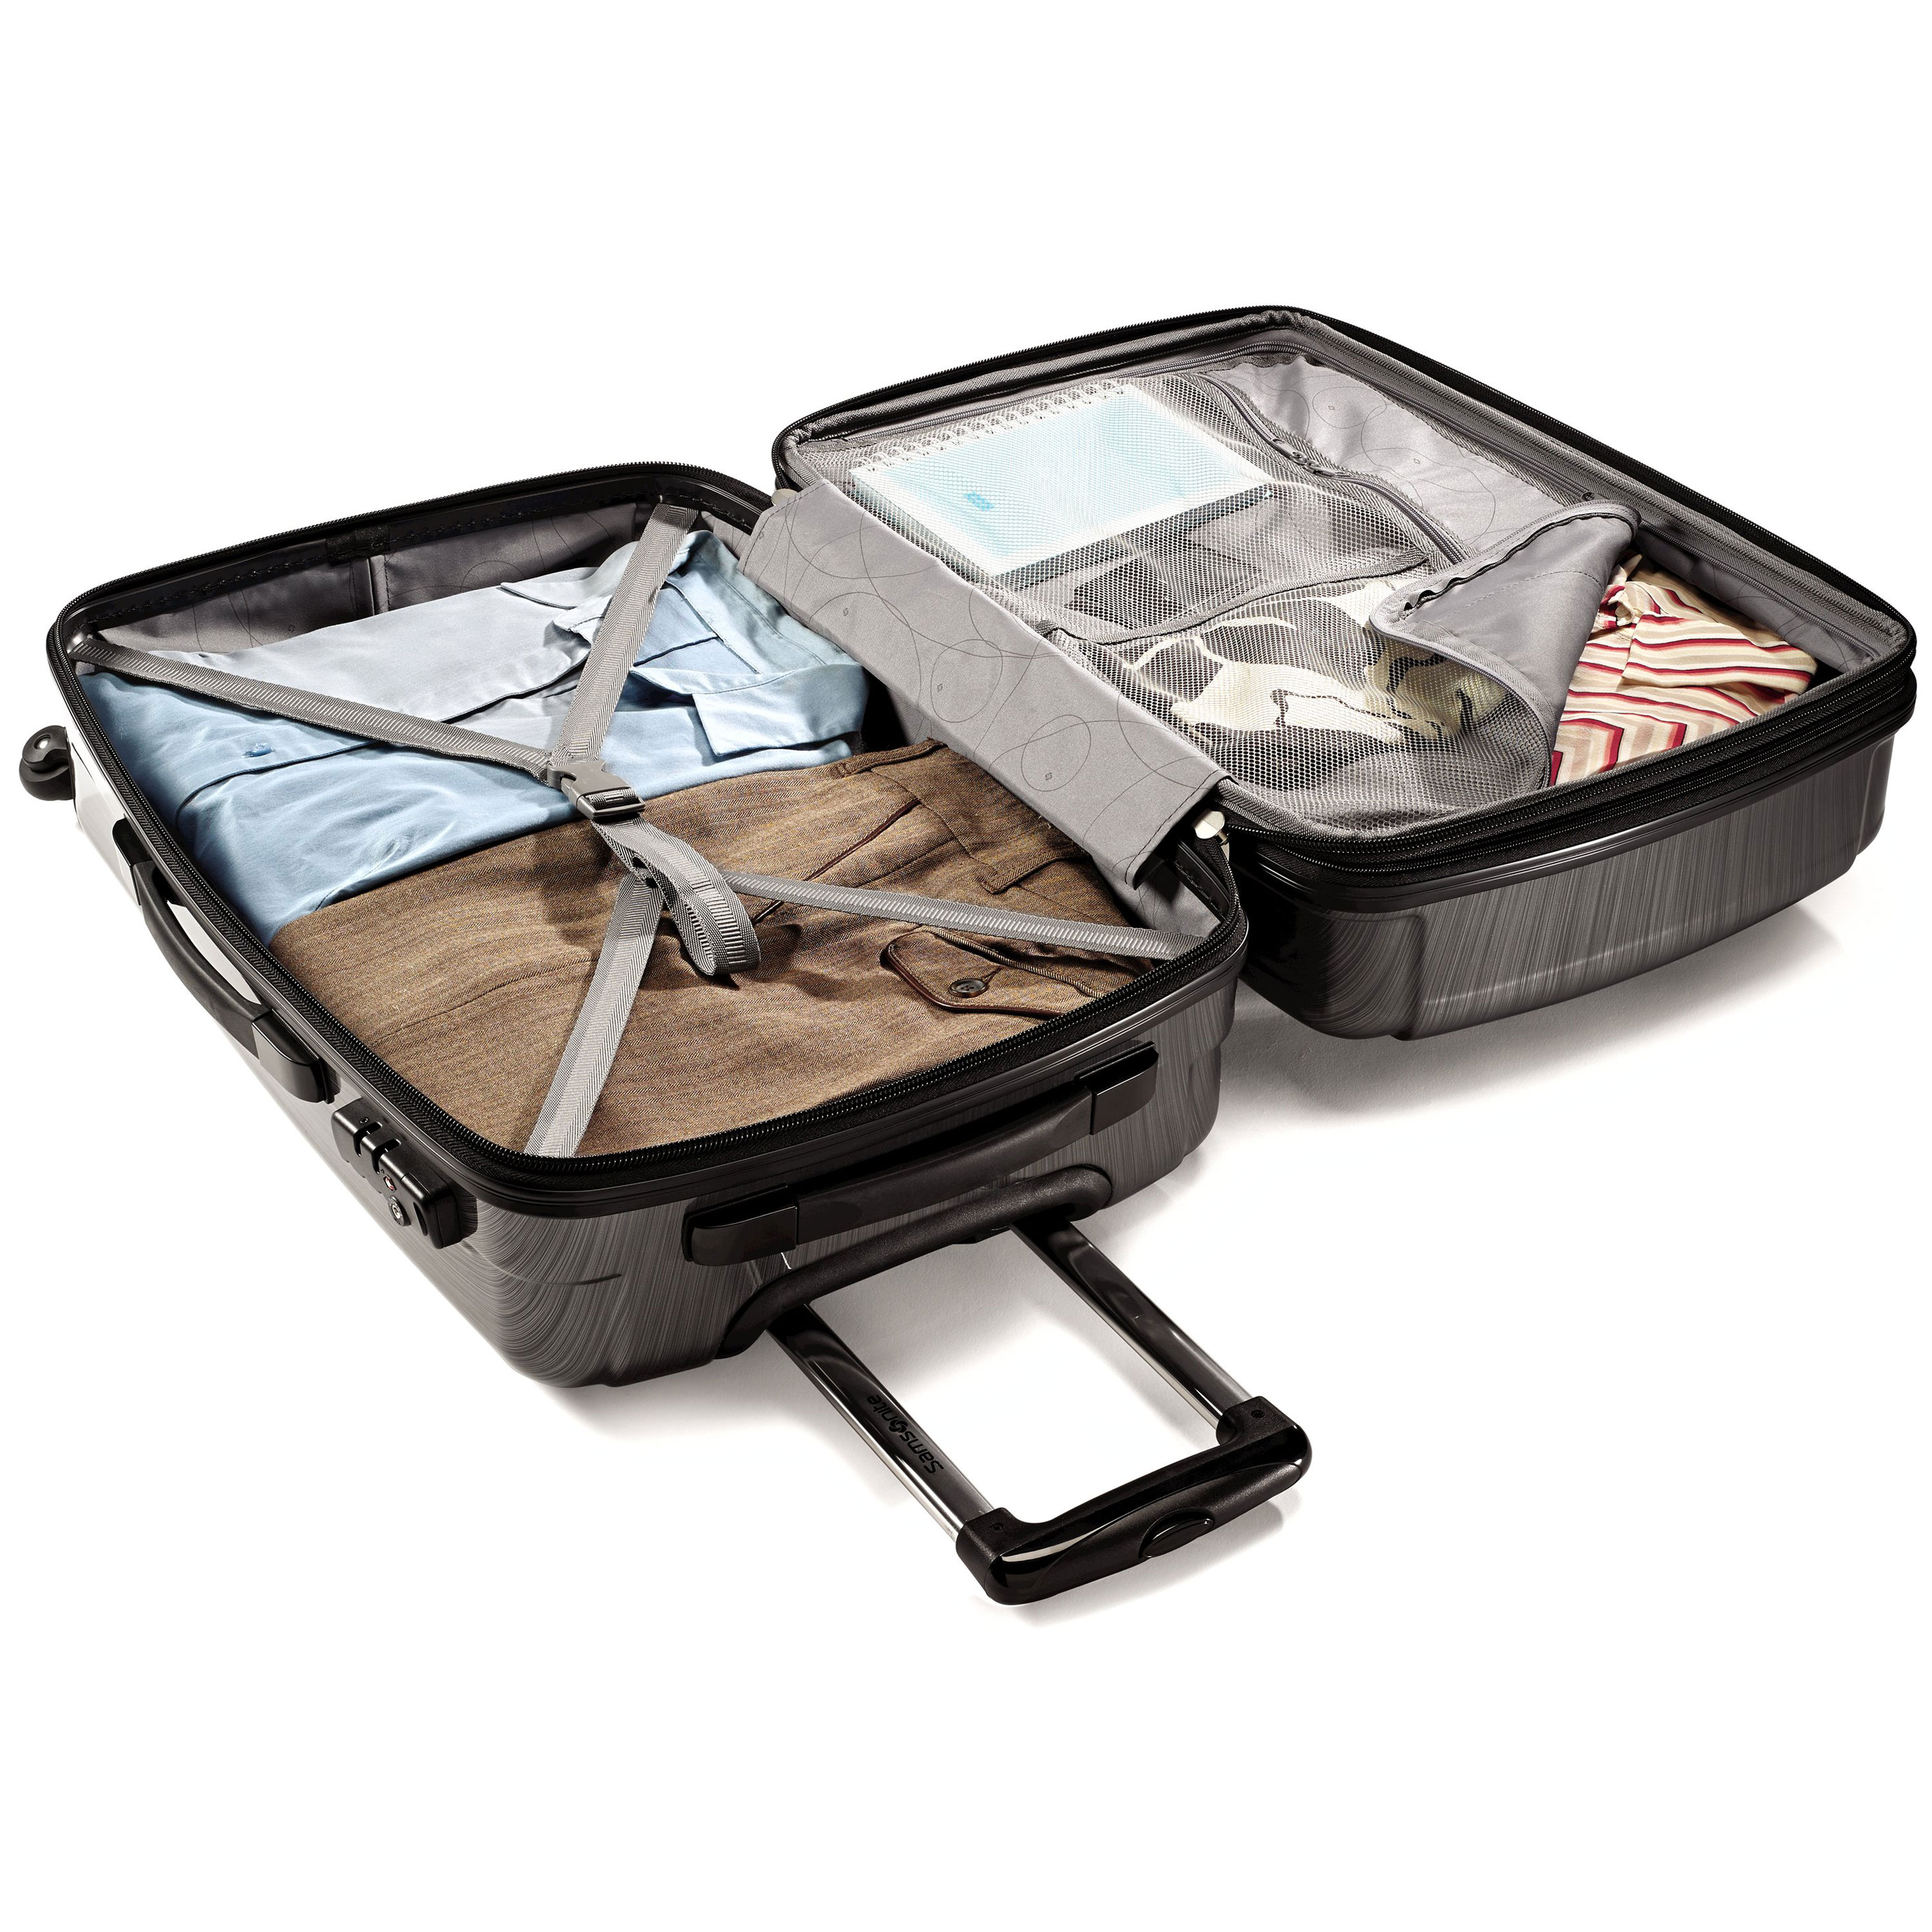 Samsonite-Winfield-2-Fashion-Spinner-Luggage thumbnail 14